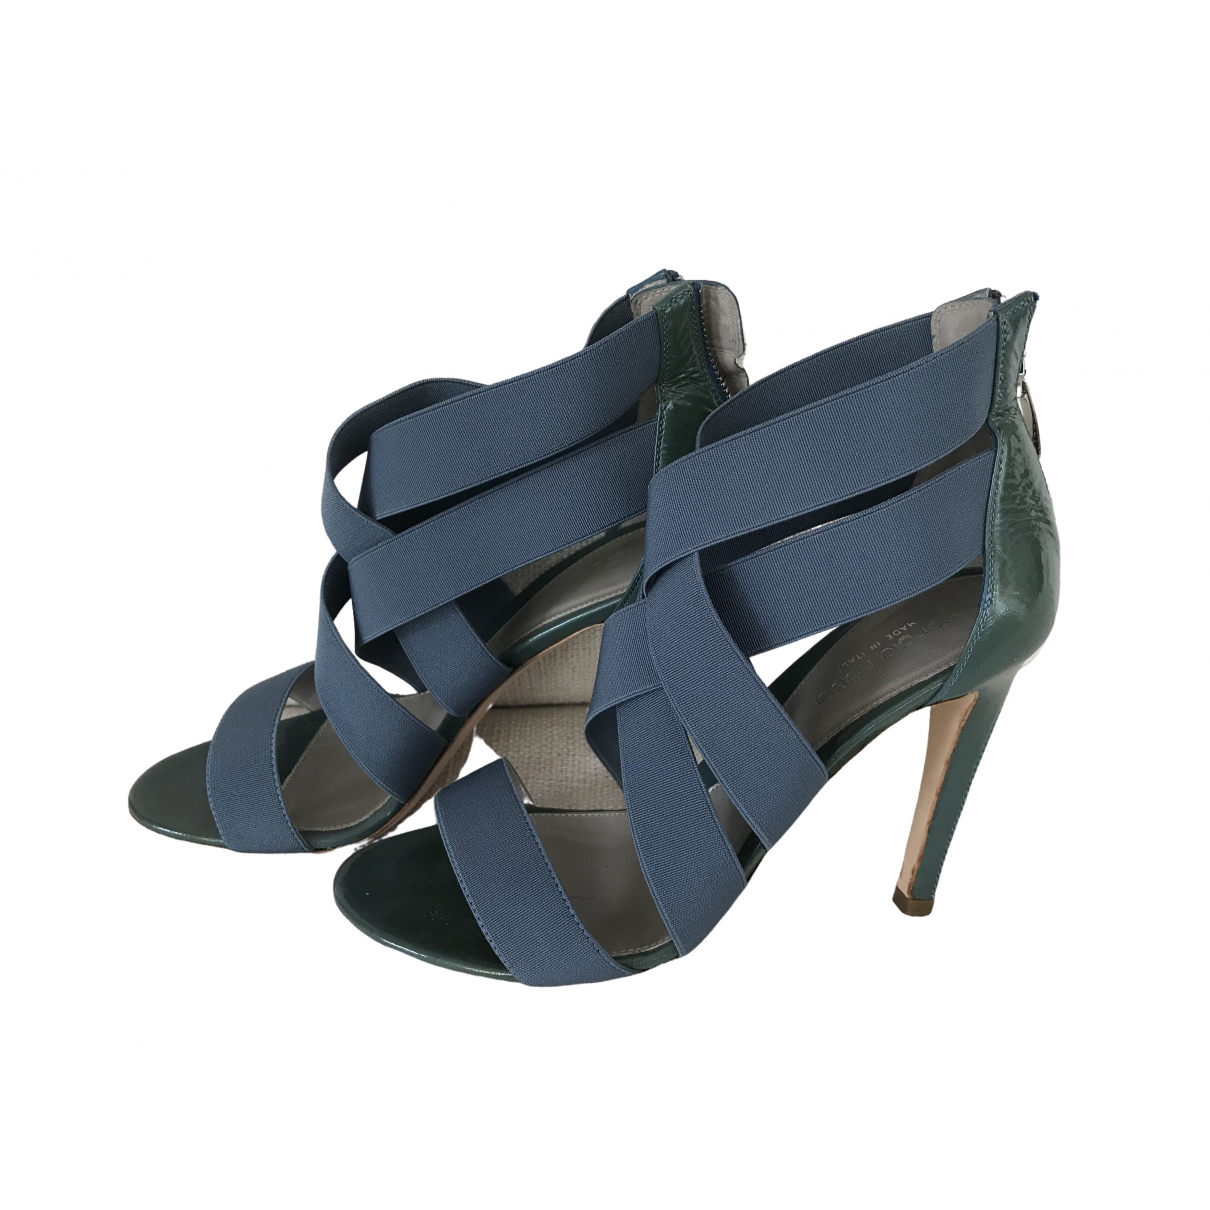 Sergio Rossi \N Blue Patent leather Sandals for Women 37.5 EU